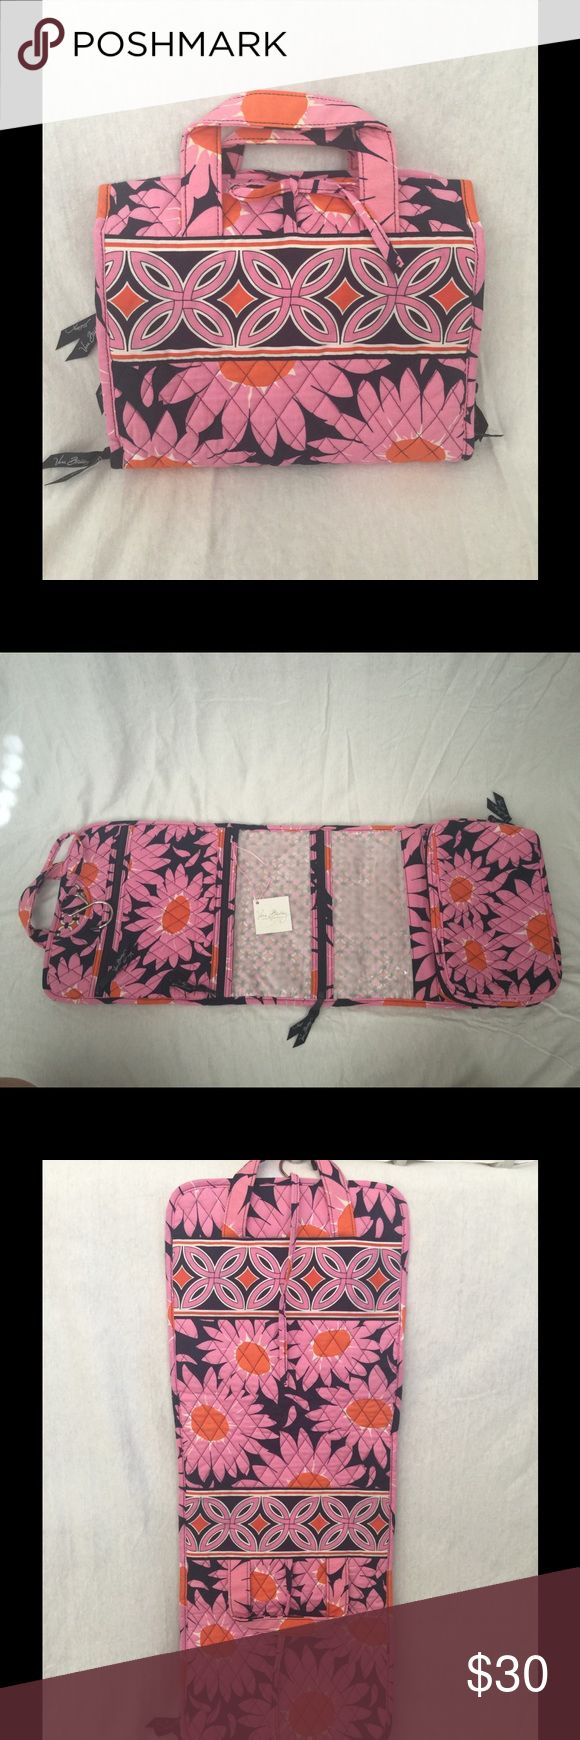 """Bold and Beautiful  Hanging Travel Organizer Vera Bradley """"Loves Me"""" pattern hanging travel toiletry/cosmetic/jewelry organizer.  Several zip up compartments.  Popular Vera Bradley pattern. Vera Bradley Bags Travel Bags"""